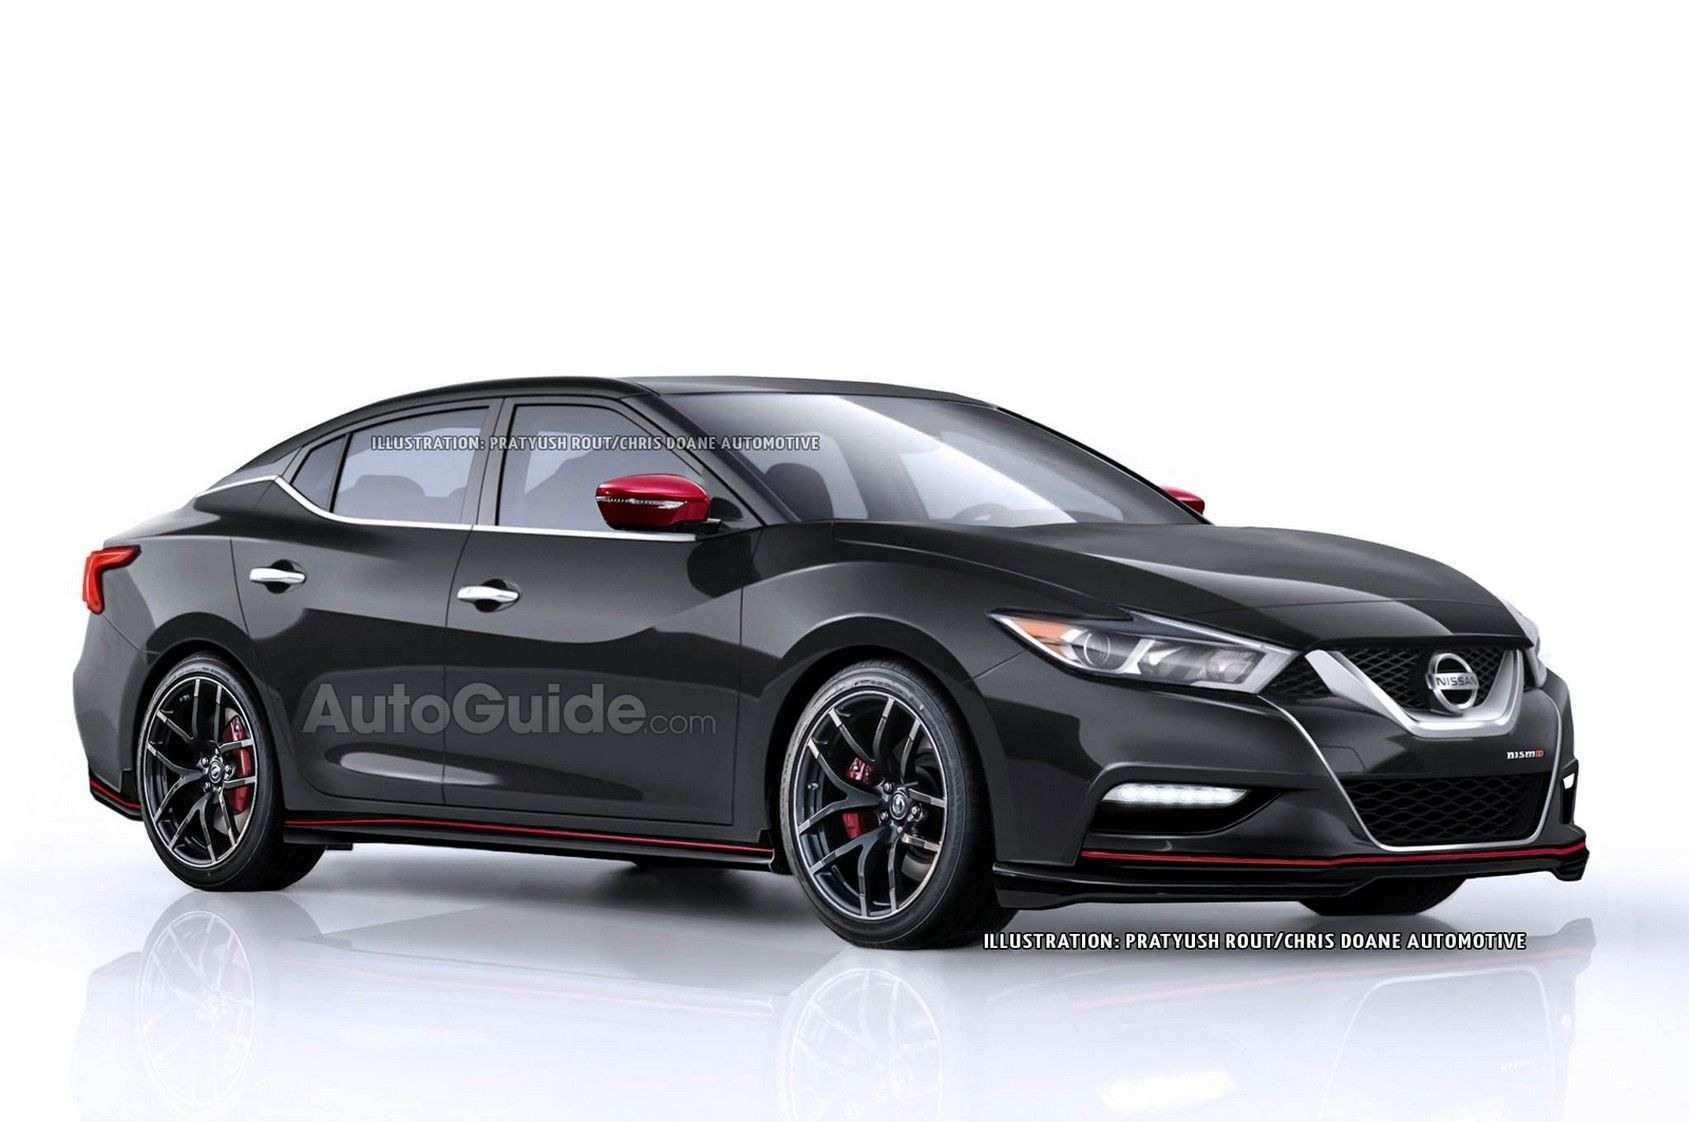 63 The Best Nissan Maxima Redesign 2020 Concept